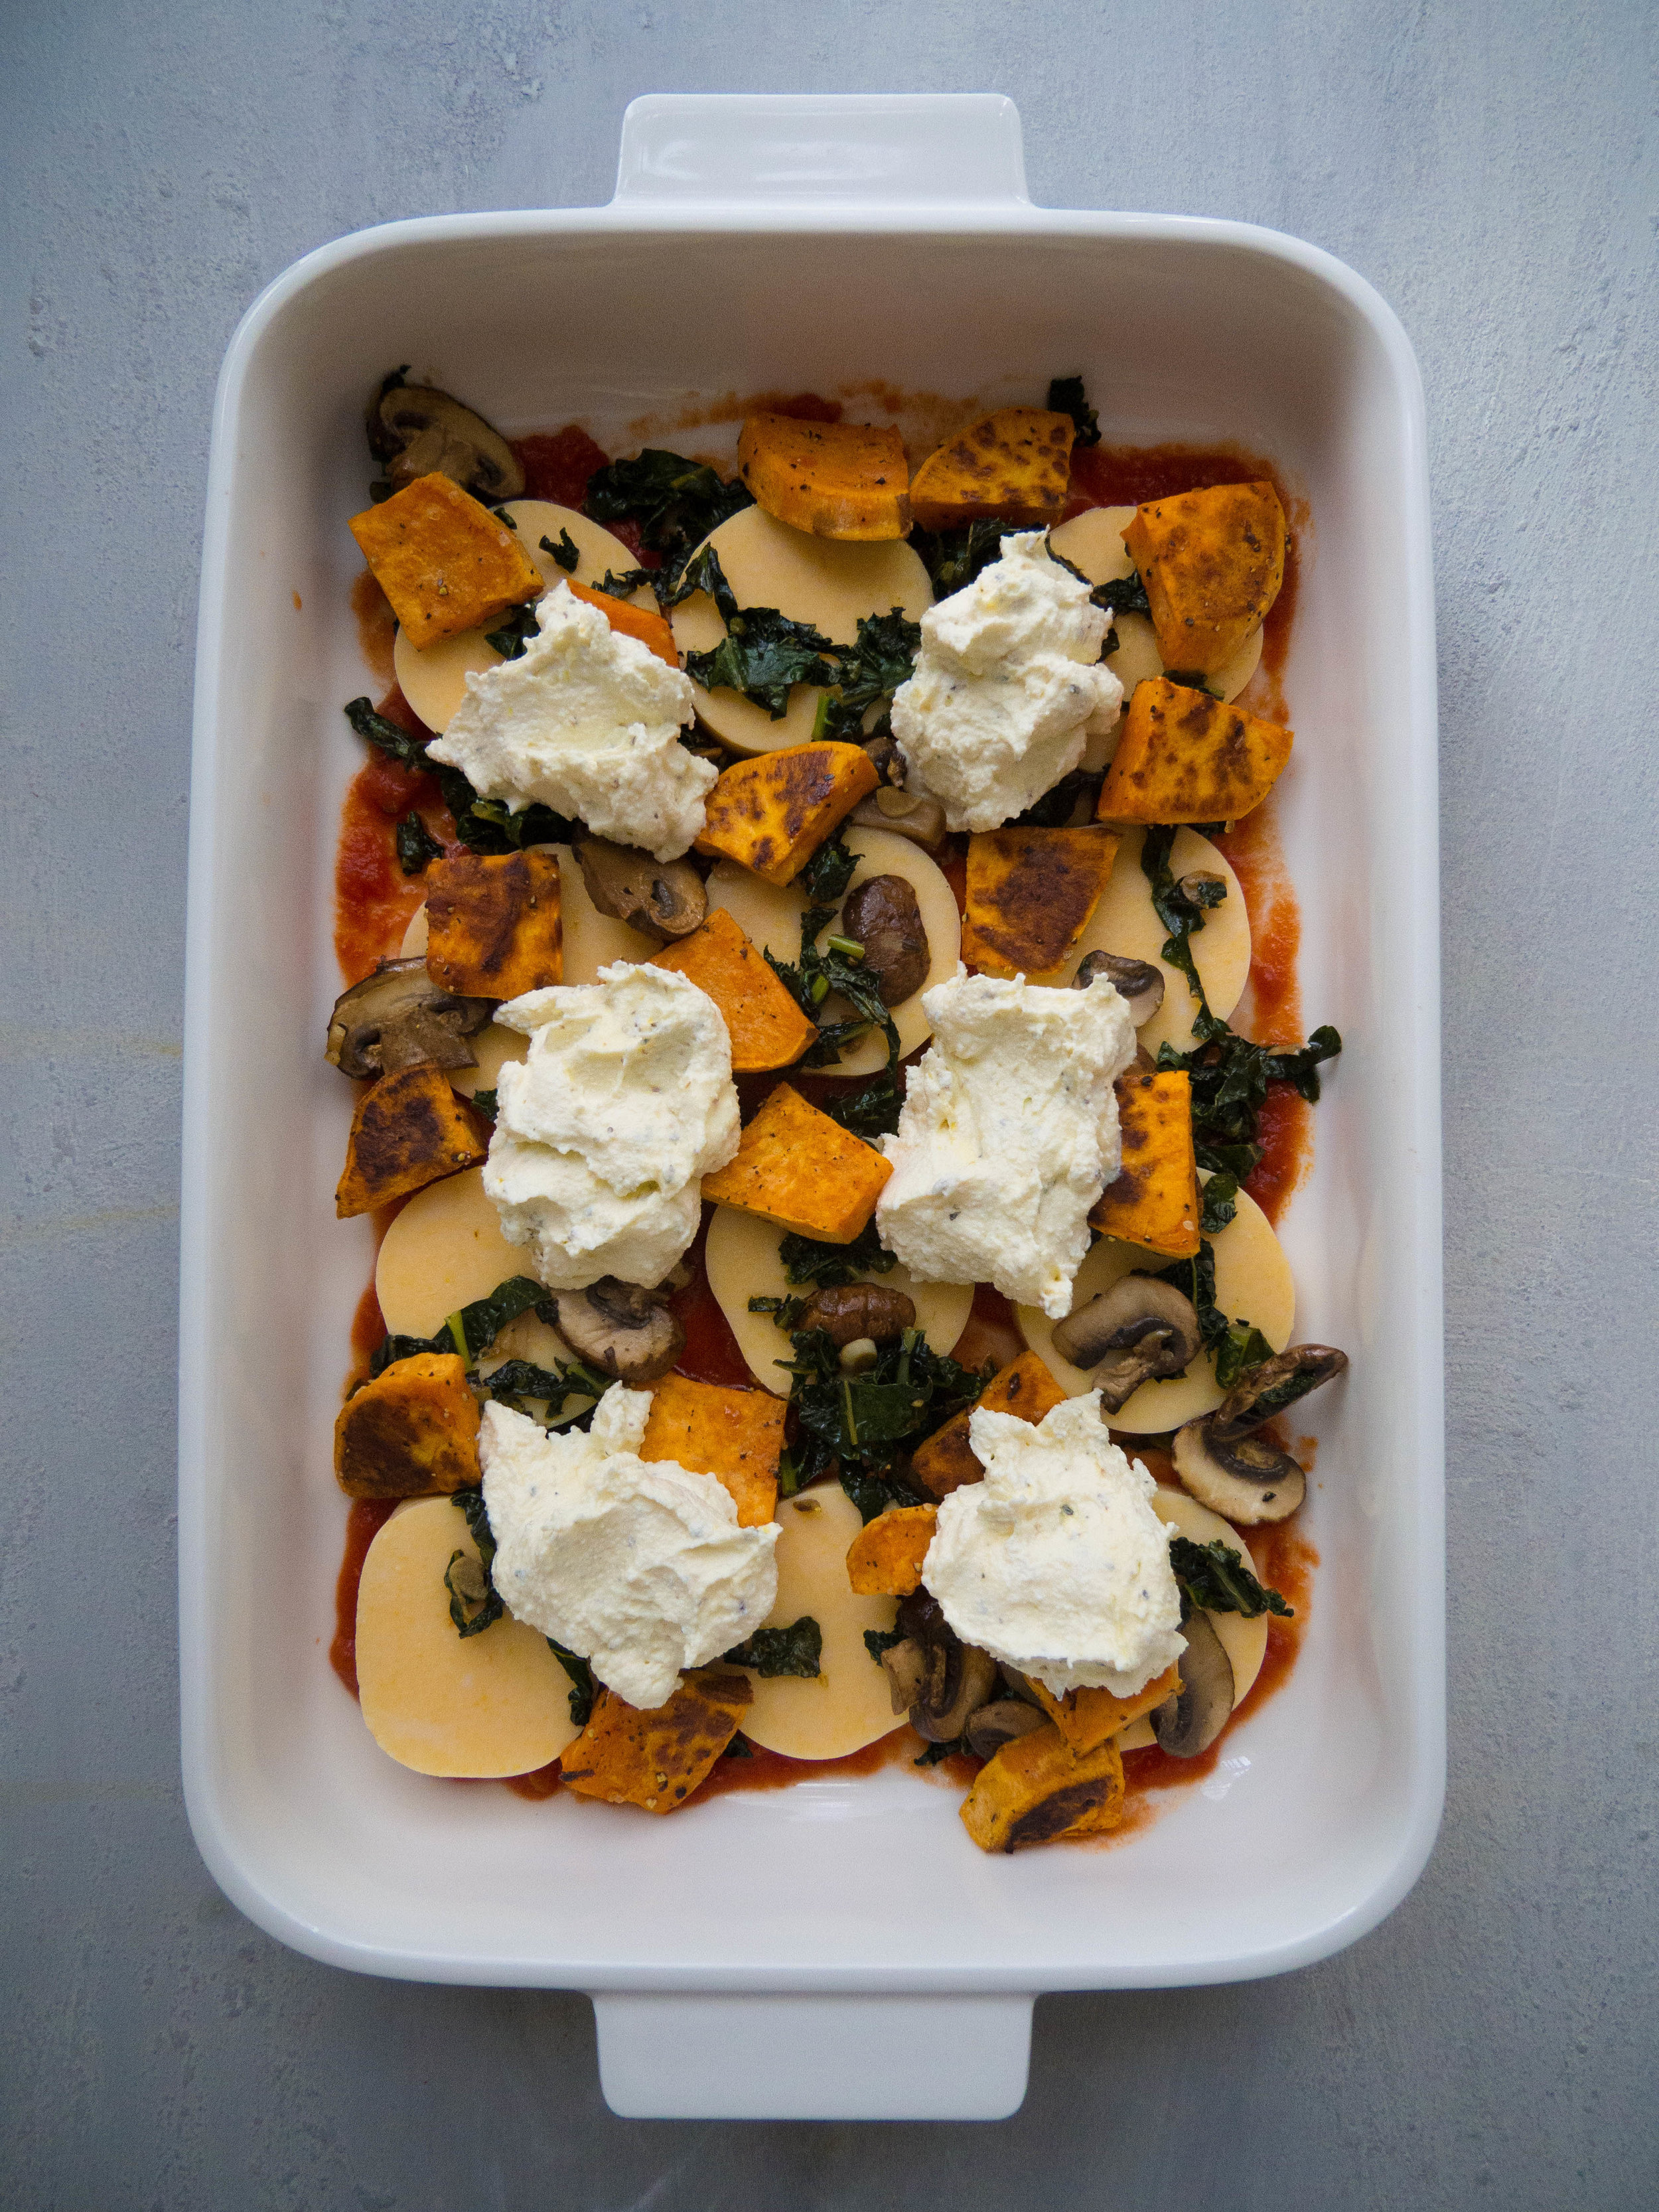 Vegetarian Polenta Lasagna with Kale, Butternut Squash and Mushrooms! It uses slices of precooked polenta tubes in lieu of lasagna noodles, to make it gluten free, and faster to prepare! Packed with roasted, caramelized fall vegetables, spicy tomato sauce and lemony herbed ricotta! #lasagna #glutenfree #fall #winter #pasta #healthyrecipe #vegetarian #kale #mushrooms #wintersquash